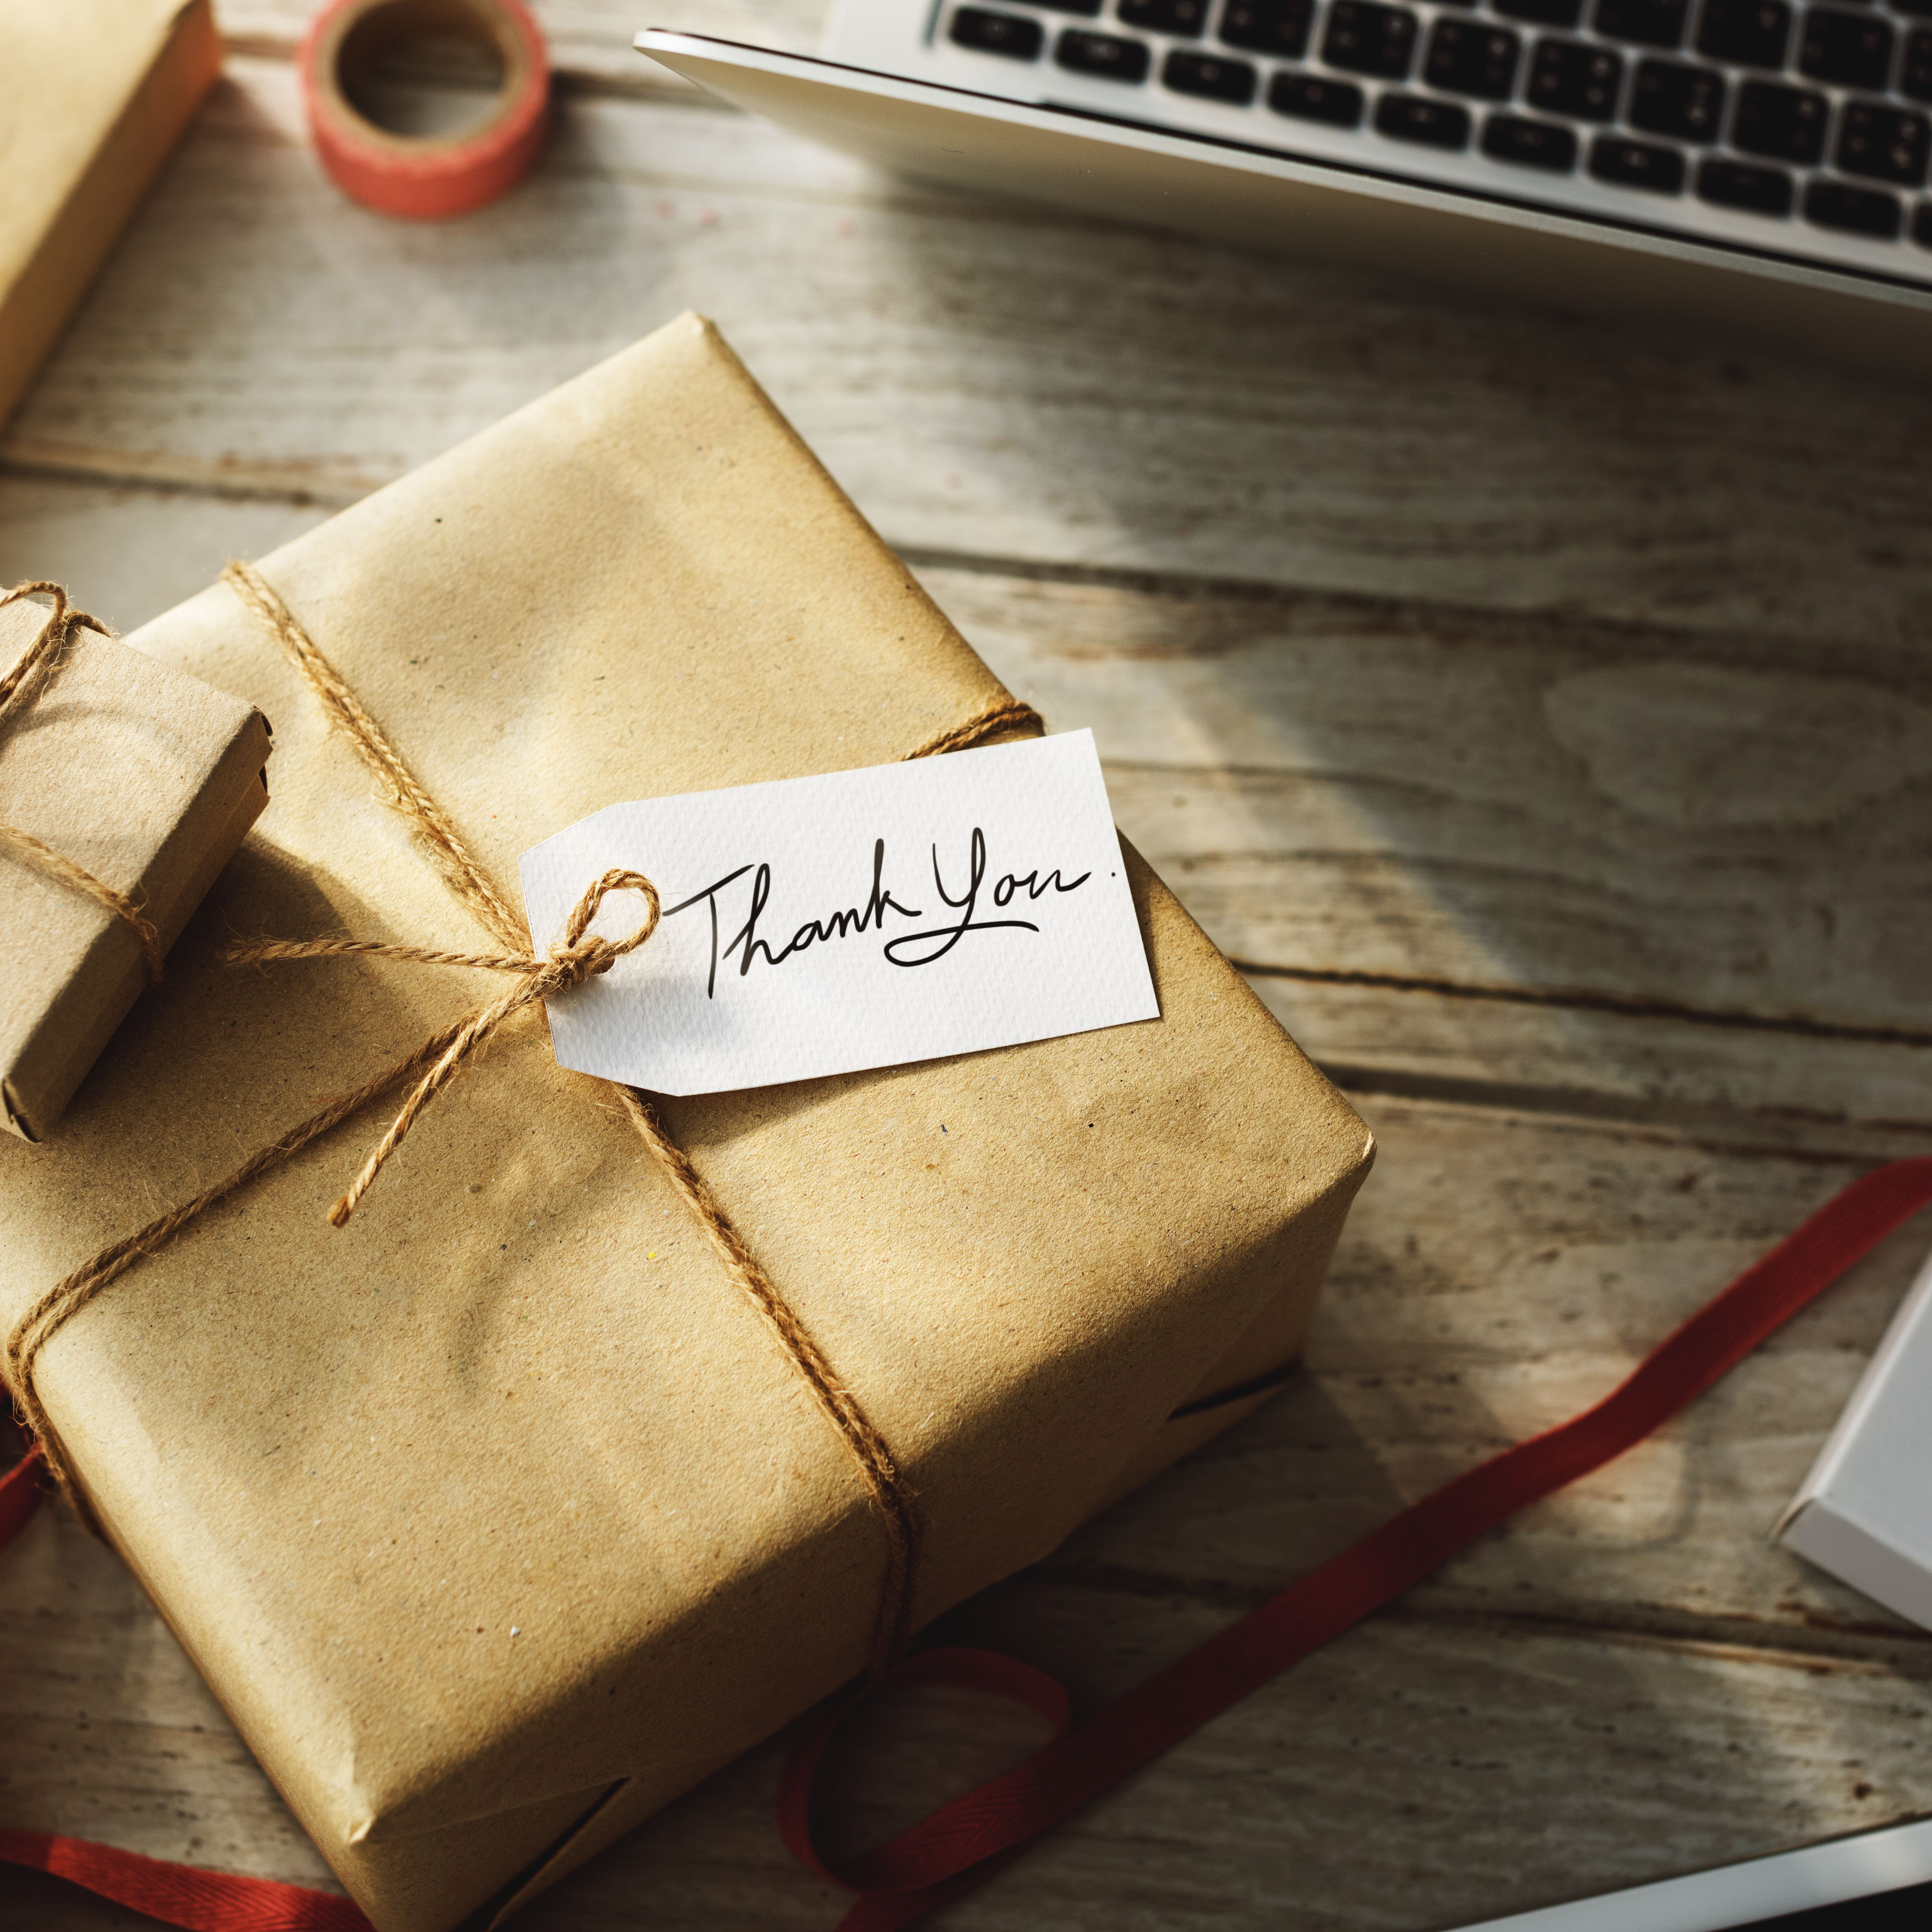 Gifts For The Bride Bridal: Should I Buy A Gift For The Hostess Of My Bridal Shower?